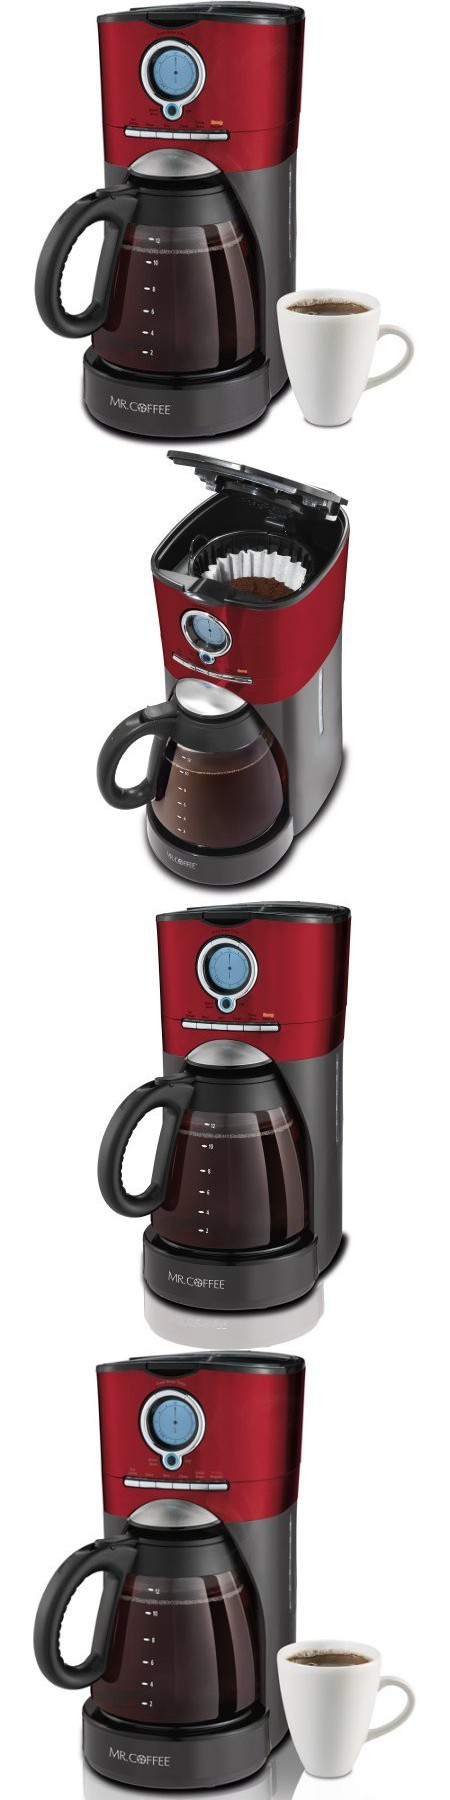 Mr. Coffee 12Cup Auto Shutoff Programmable Coffee Maker